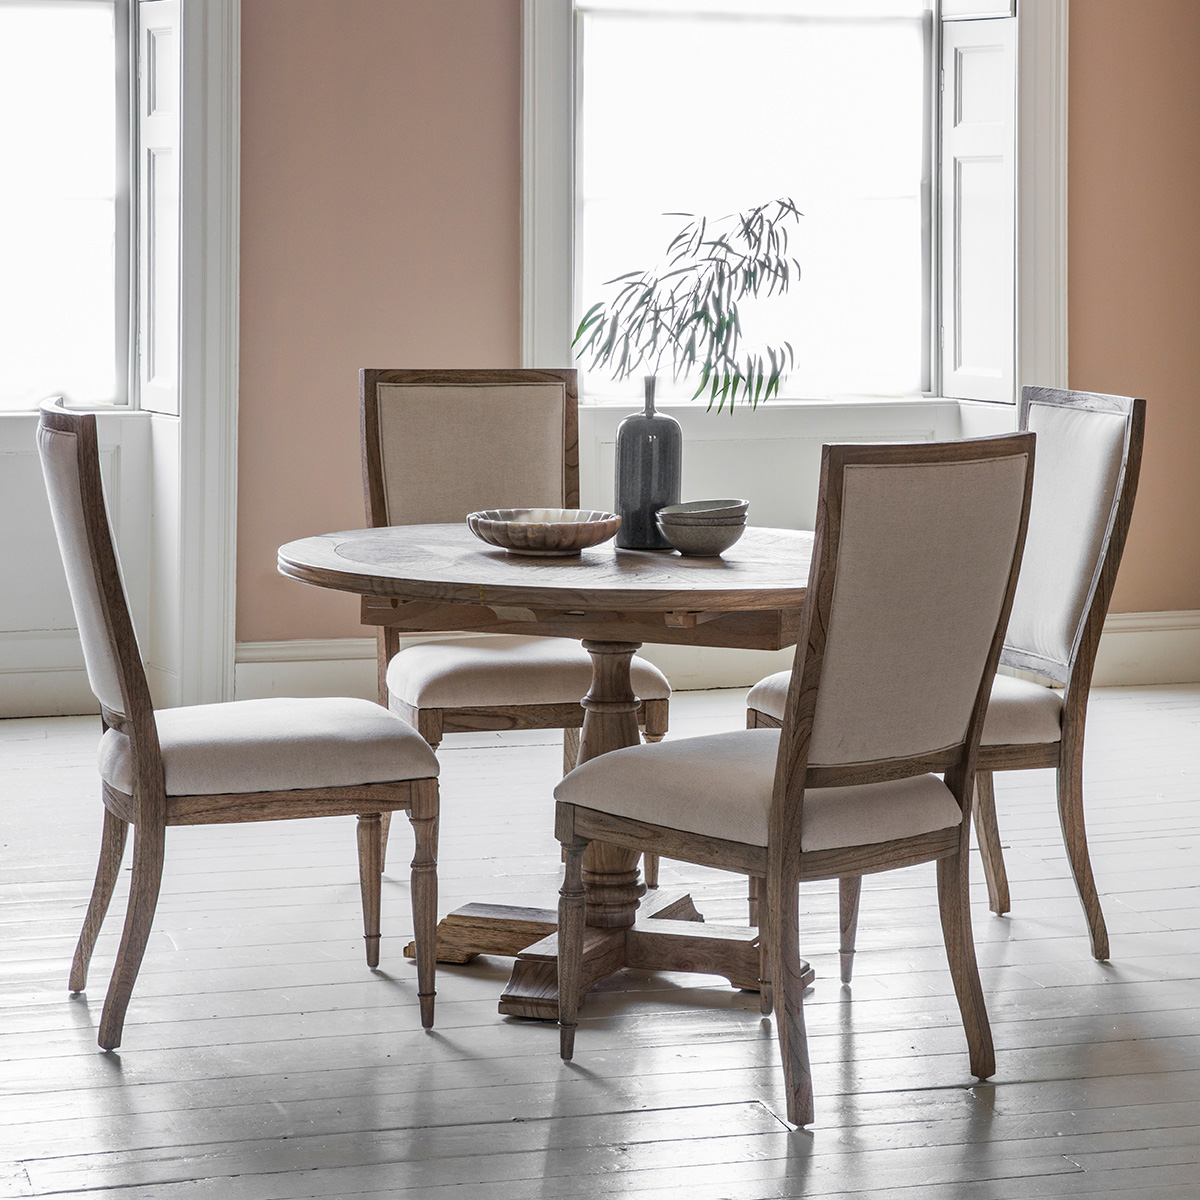 French Colonial Round Extending Dining Table with Chairs (Number of Chairs: 6 Carver Chairs)